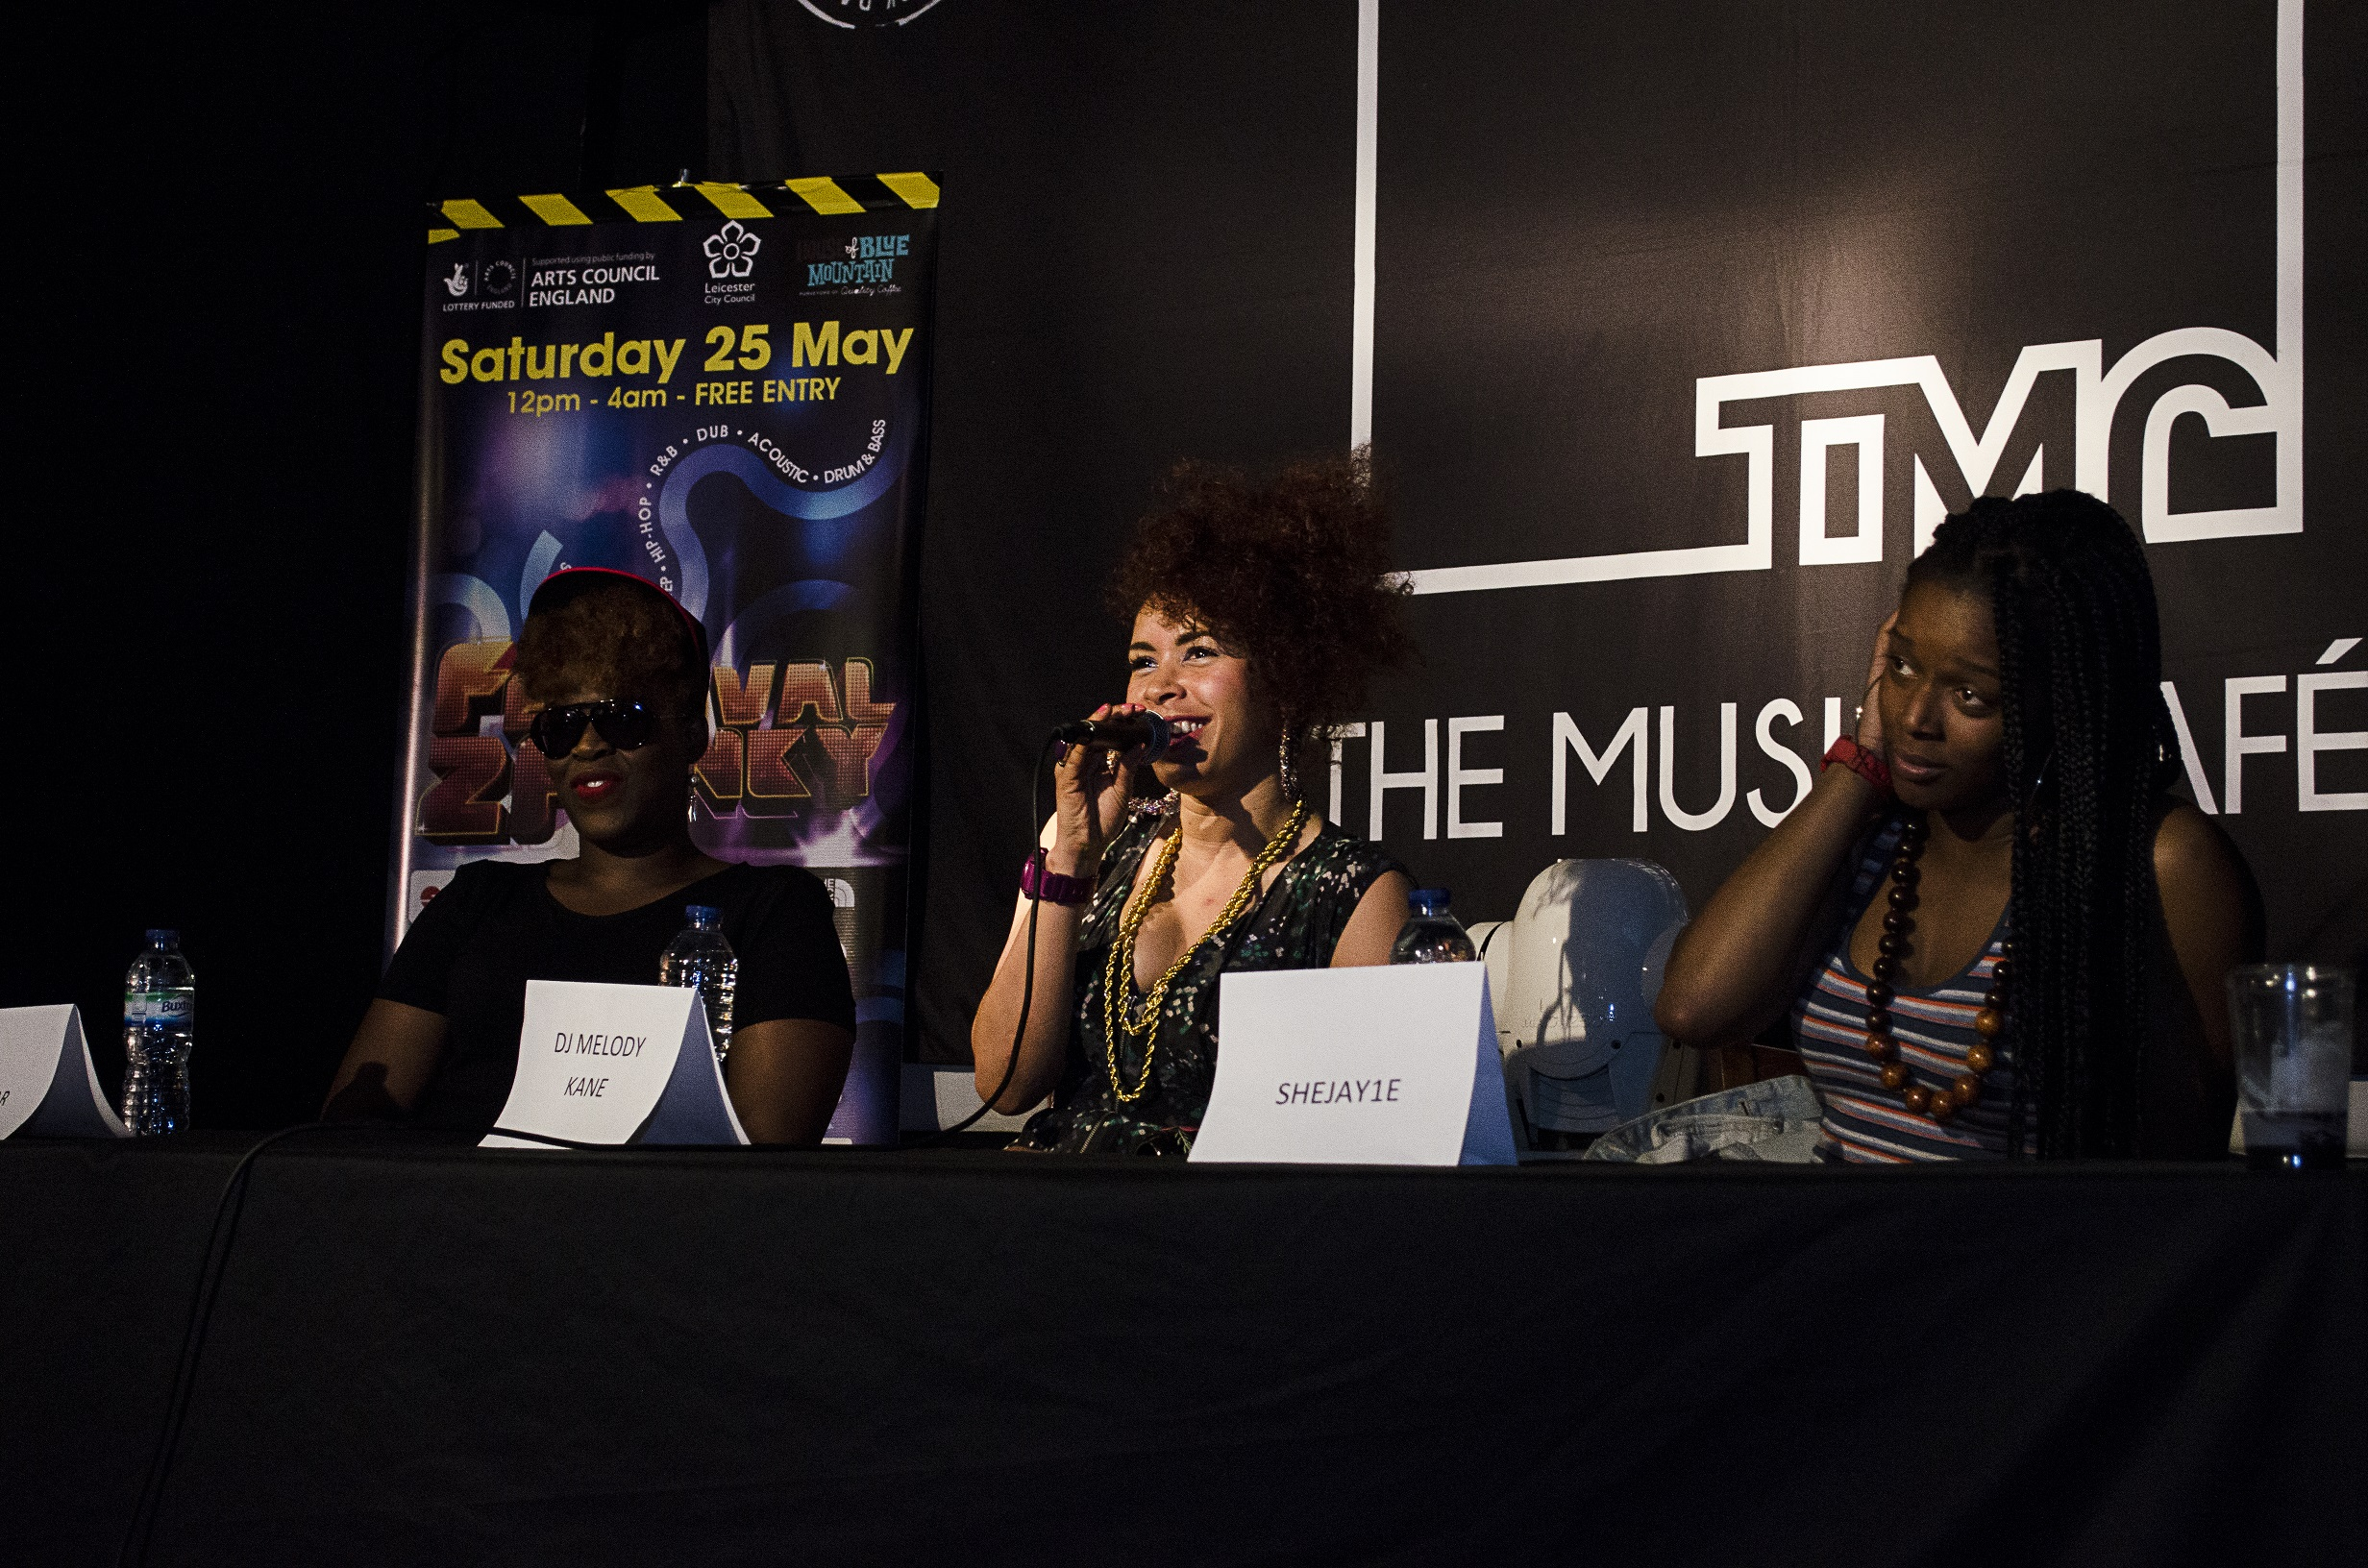 Festival2Funky hosts Women In Music debate with high profile panellists